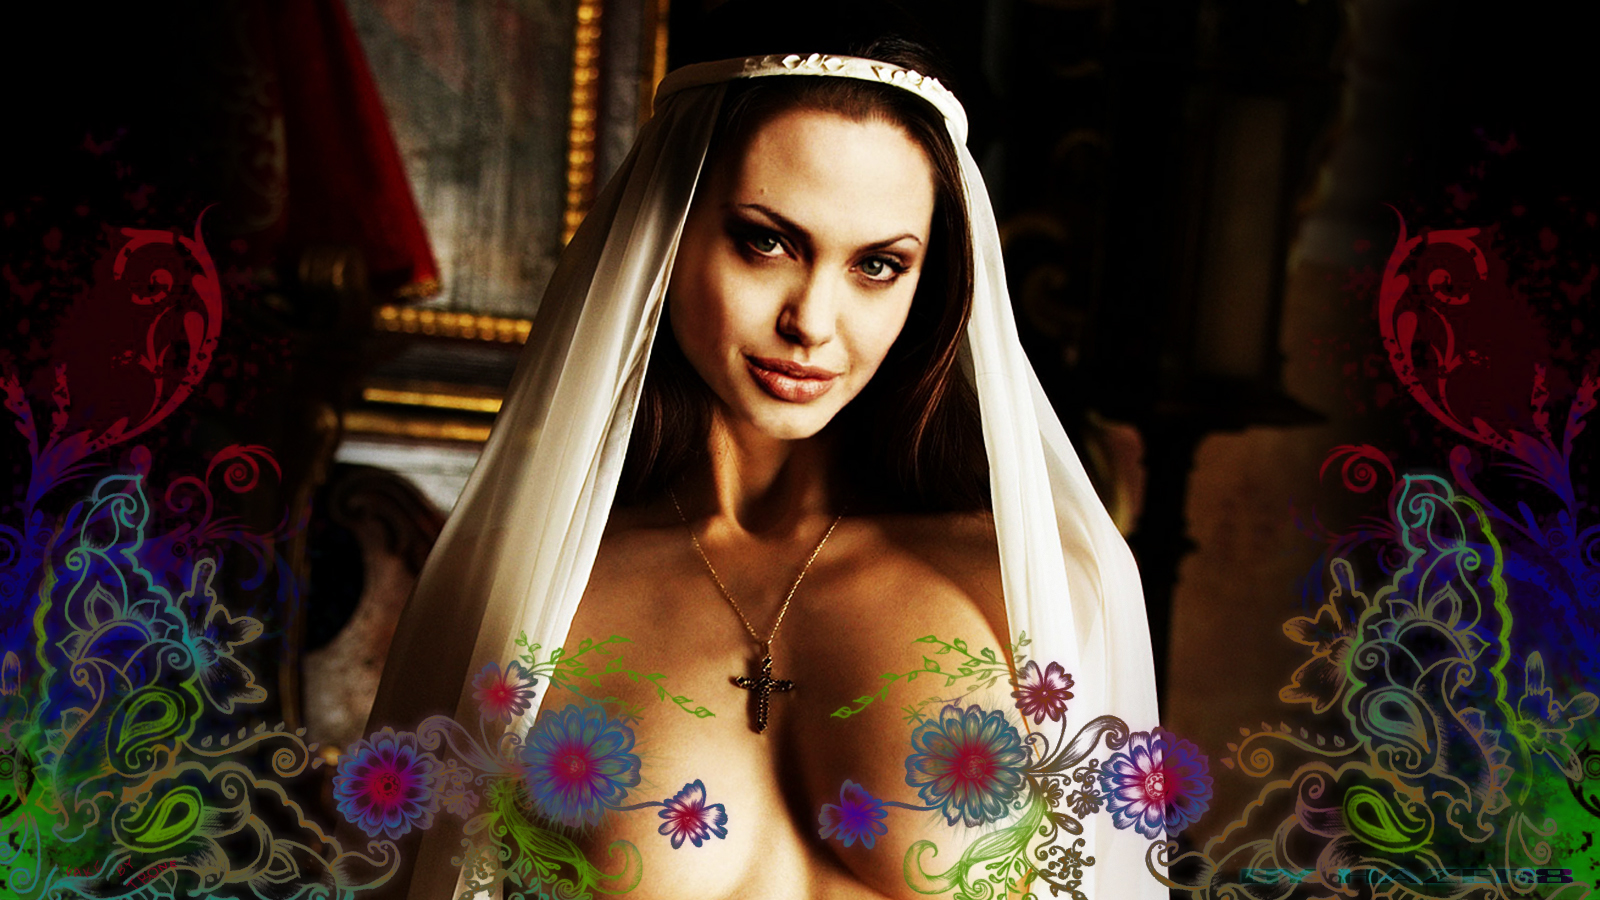 Download High quality jolie, colorfull, nude Angelina Jolie wallpaper